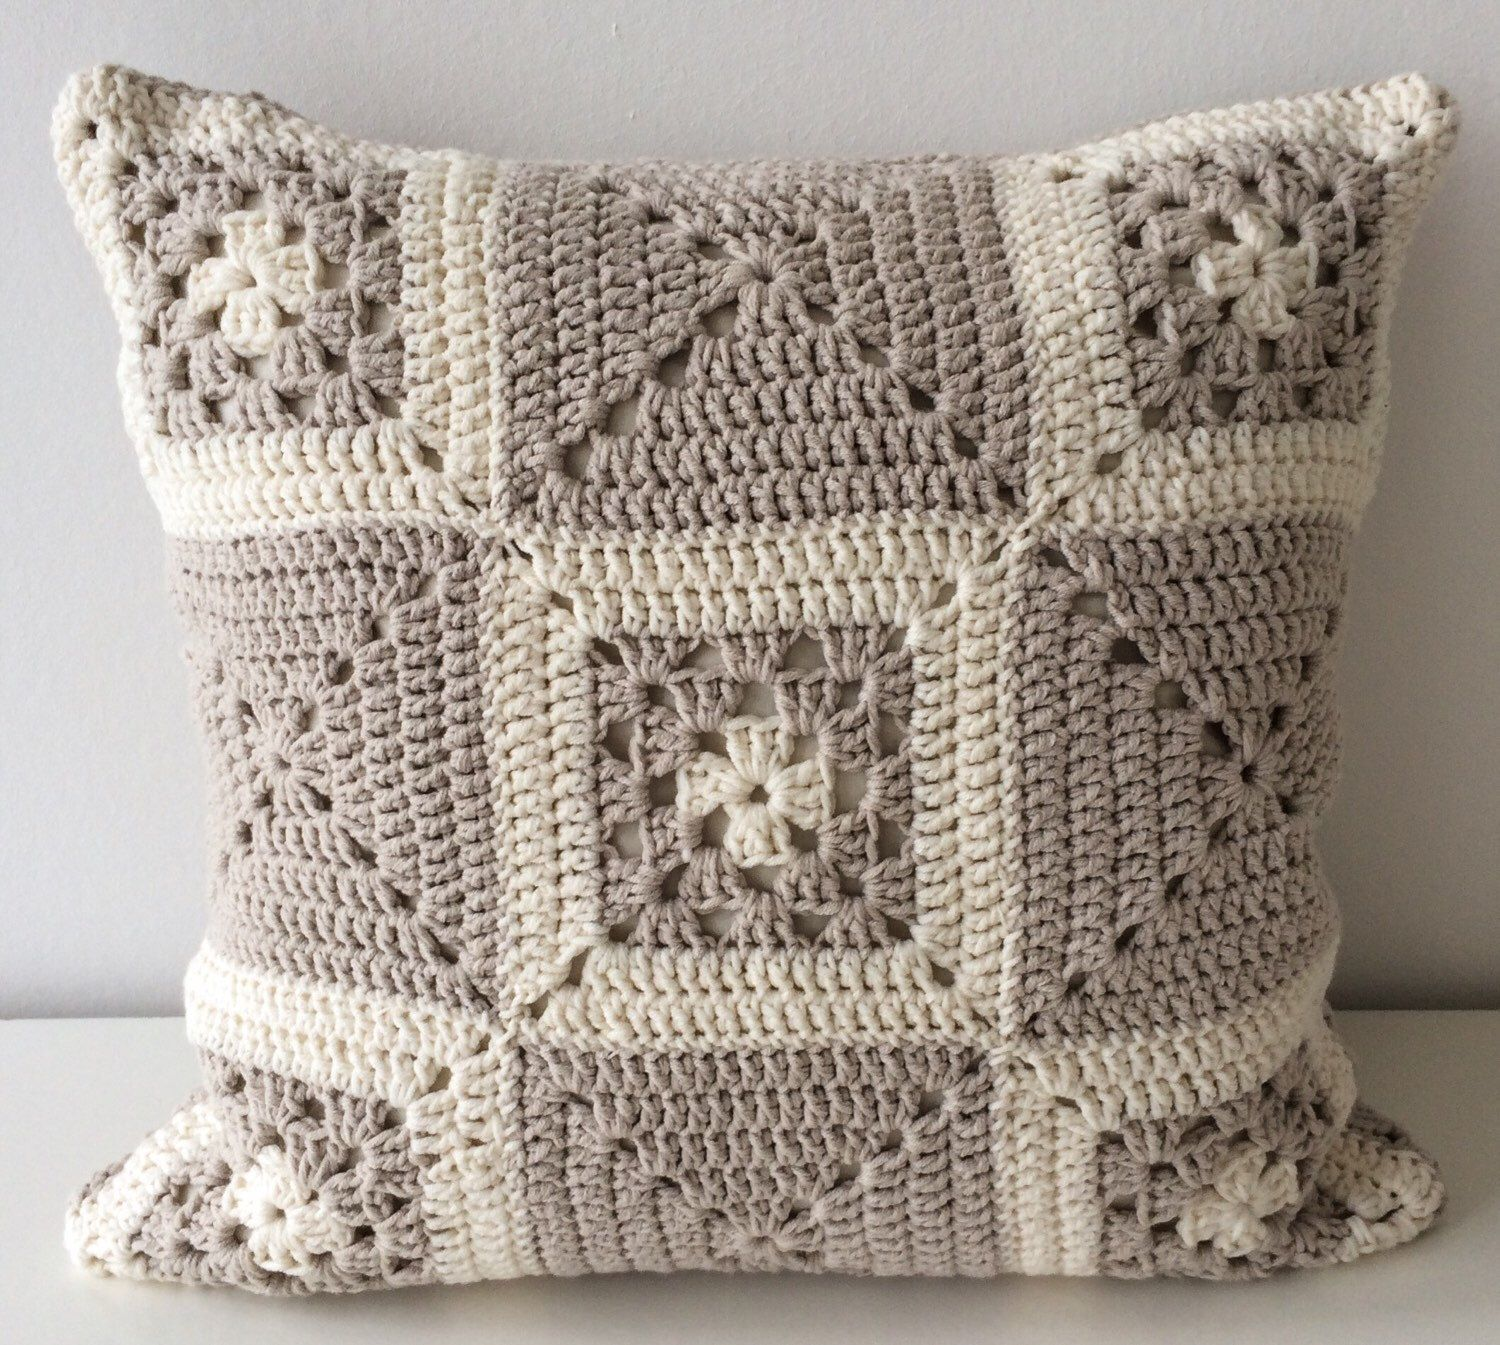 Pin de Ruth Bross en pillows | Pinterest | Ganchillo, Tejido y Manta